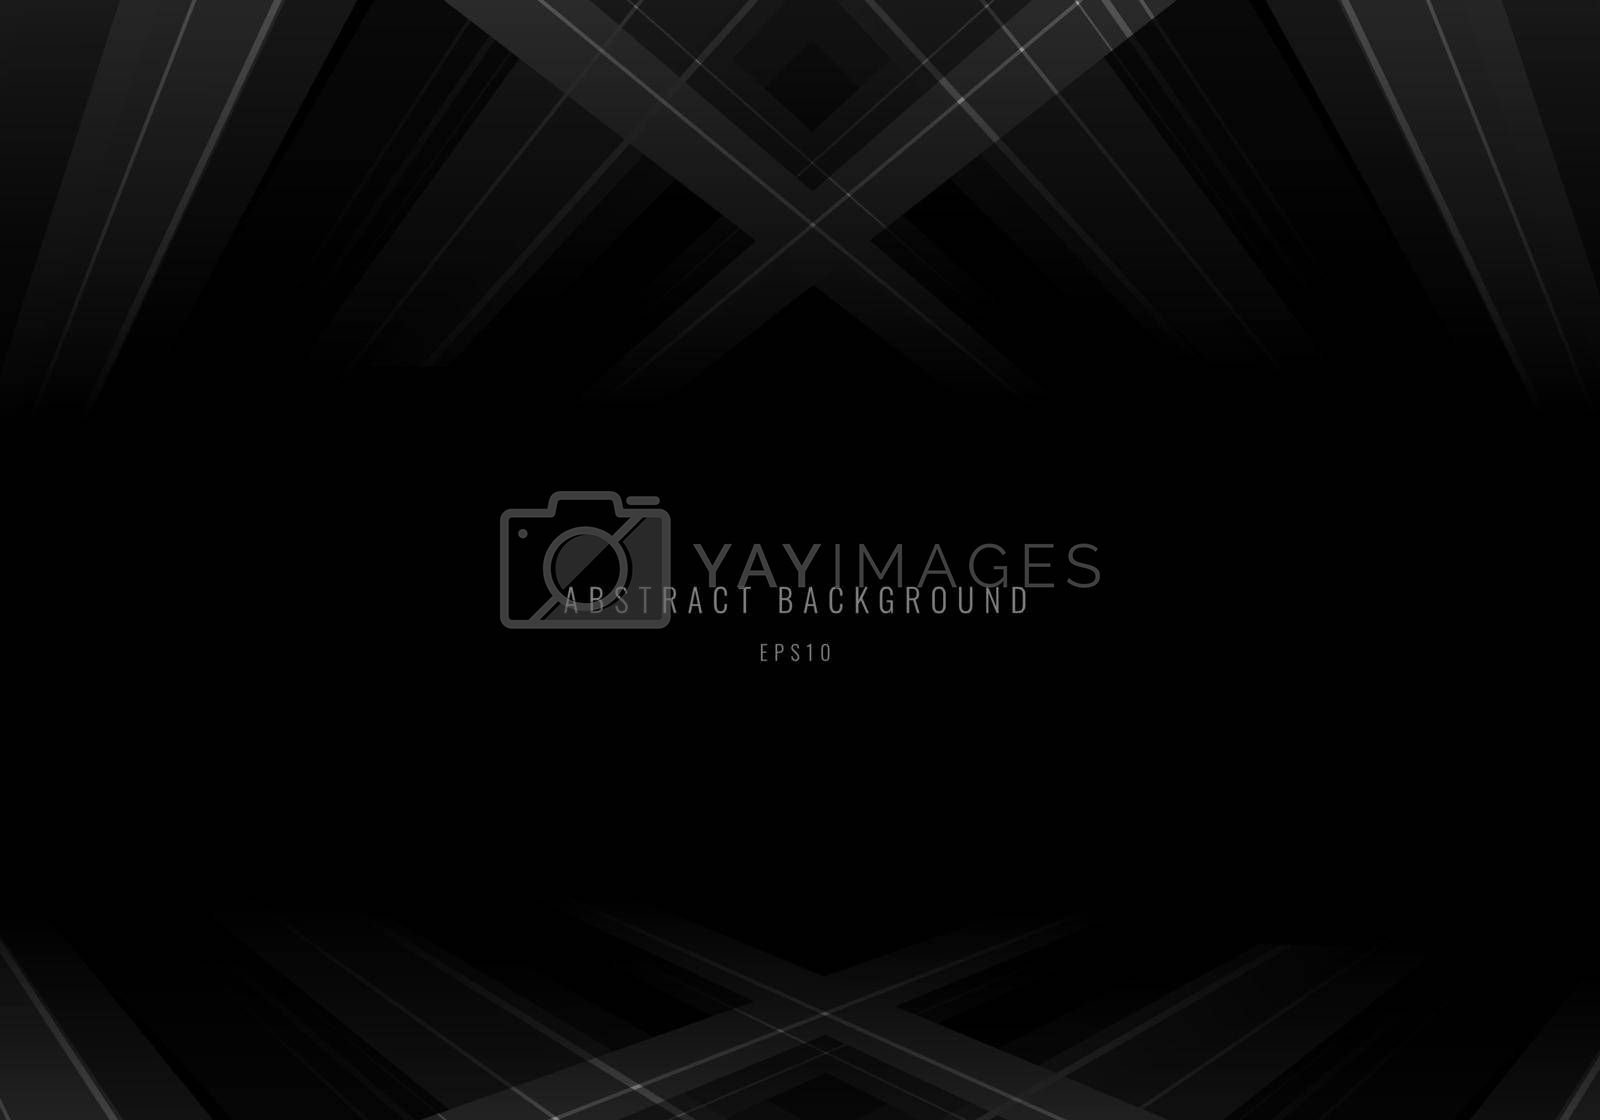 Abstract gray stripes with lines perspective on black background. Vector illustration